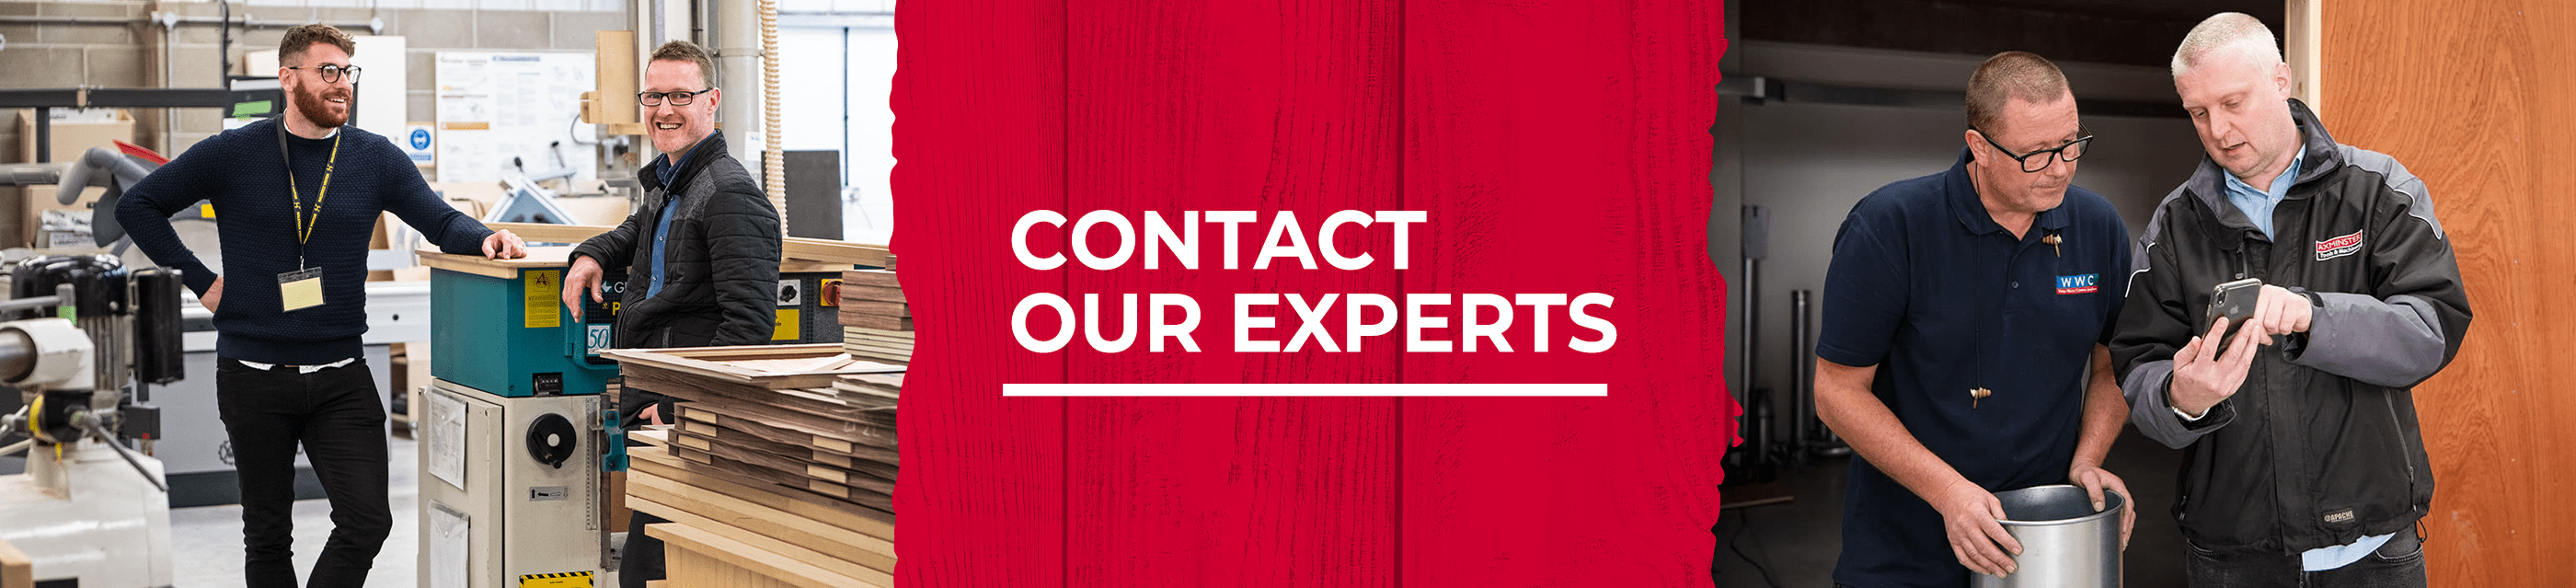 Contact the Business Services team